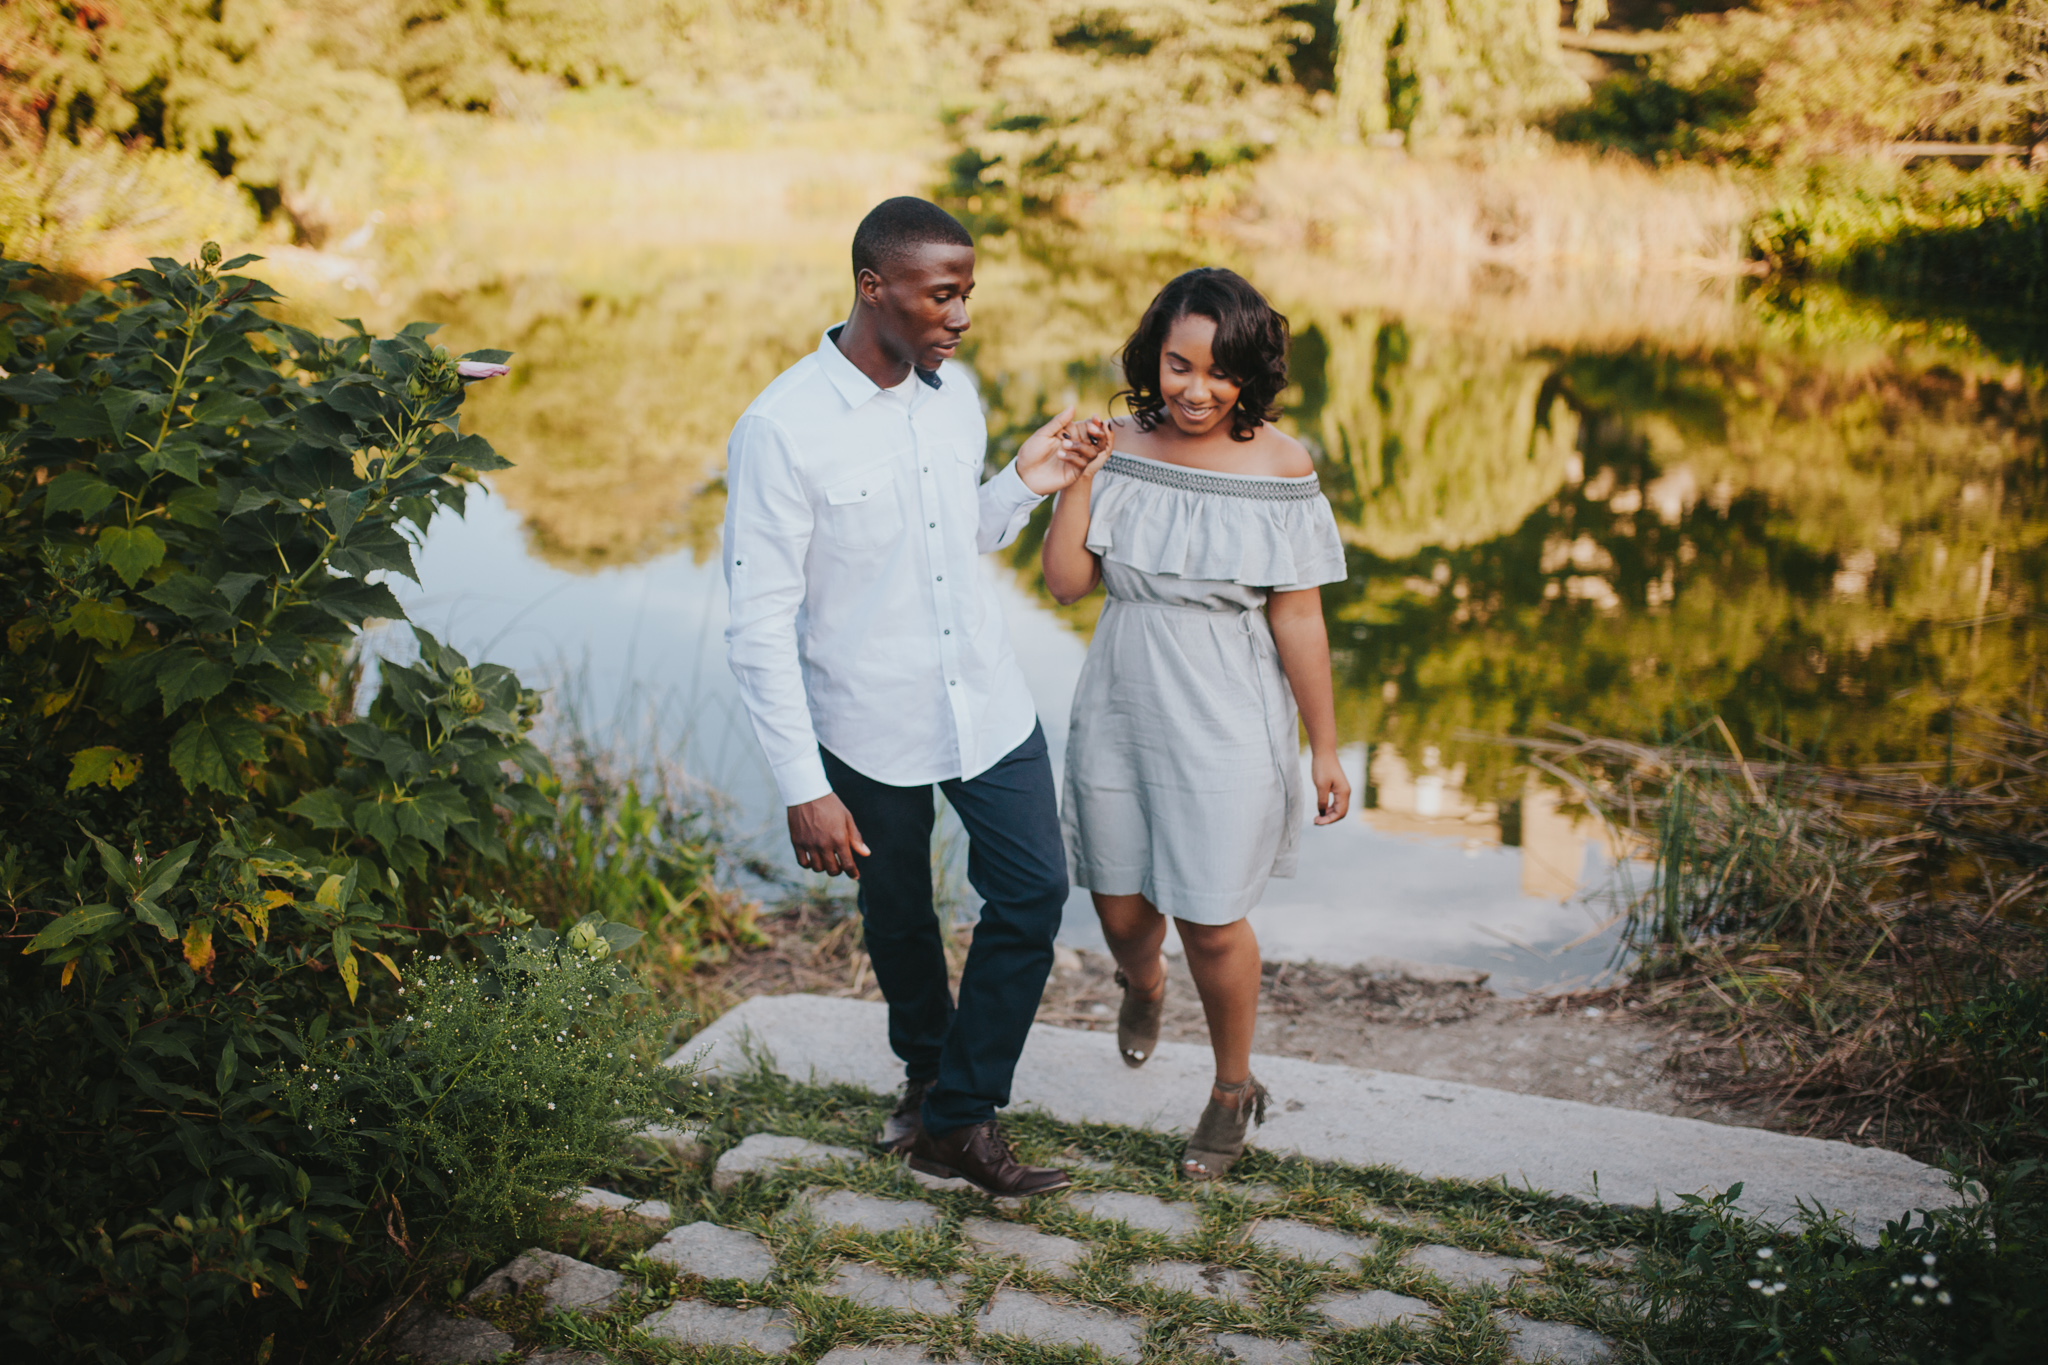 arnold arboretum engagement shoot